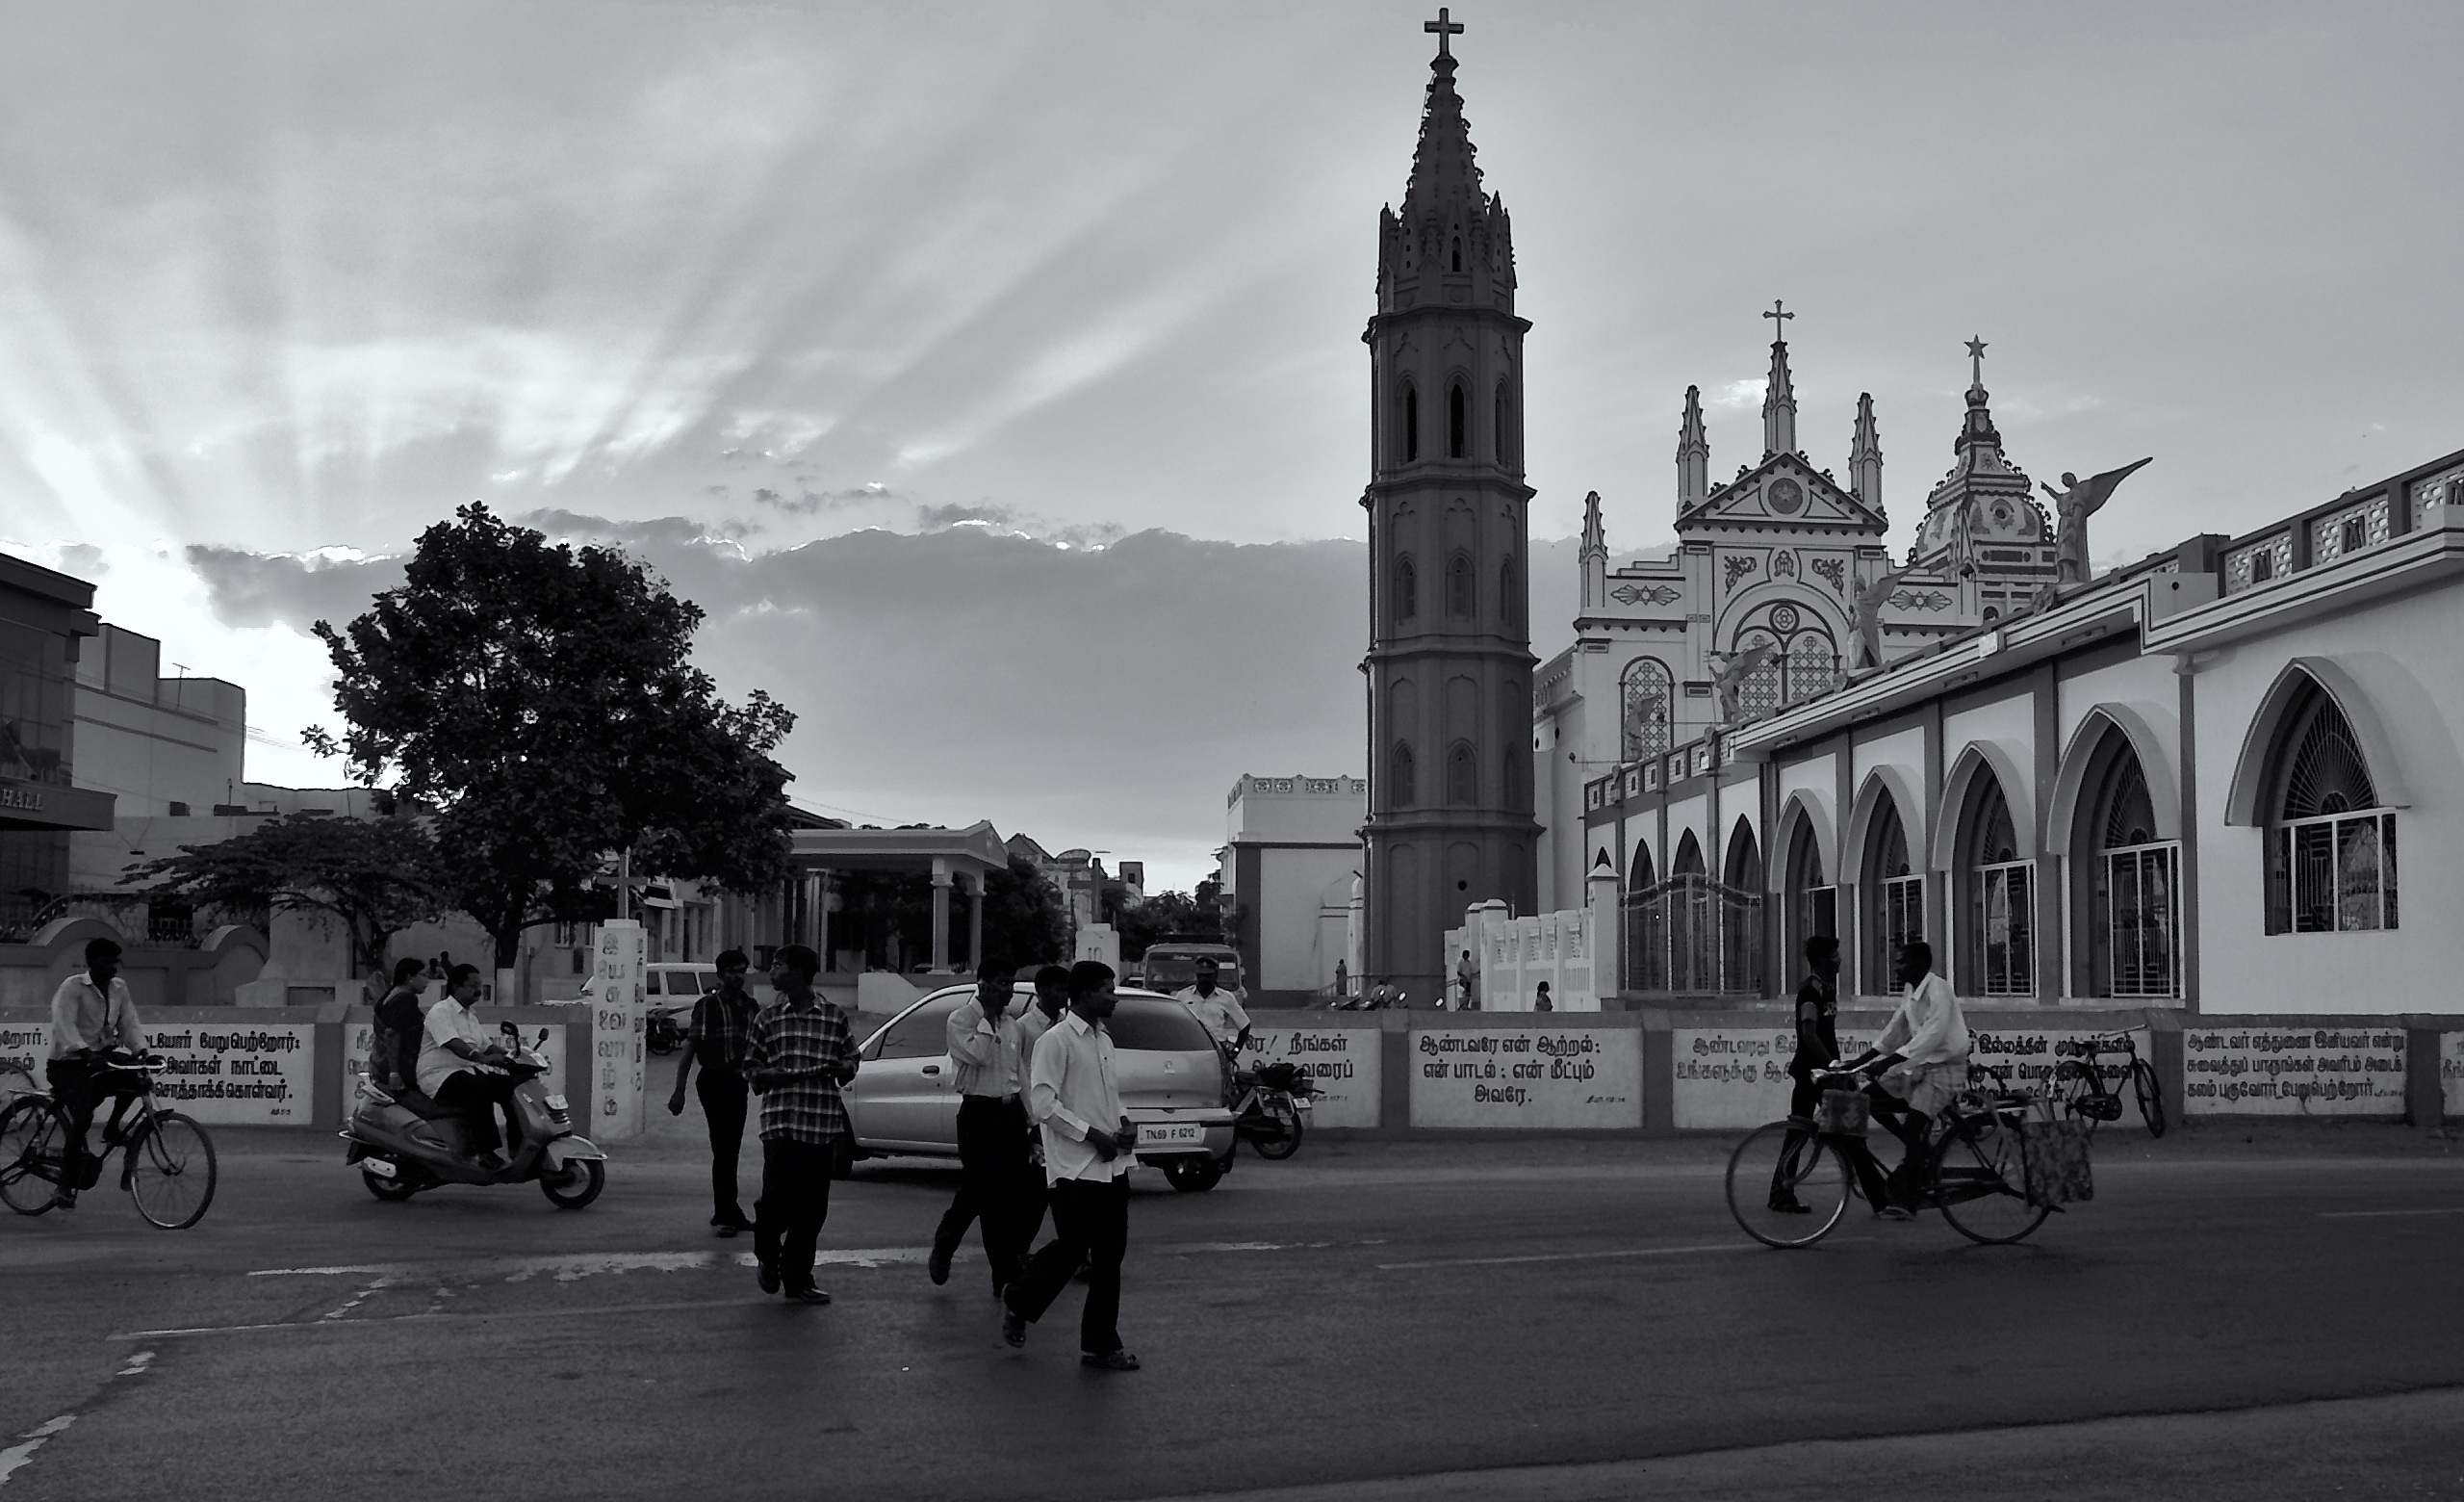 Sun is setting behind the Church (Our Lady of Snows Shrine Basilica), Tuticorin, Tamil Nadu, India